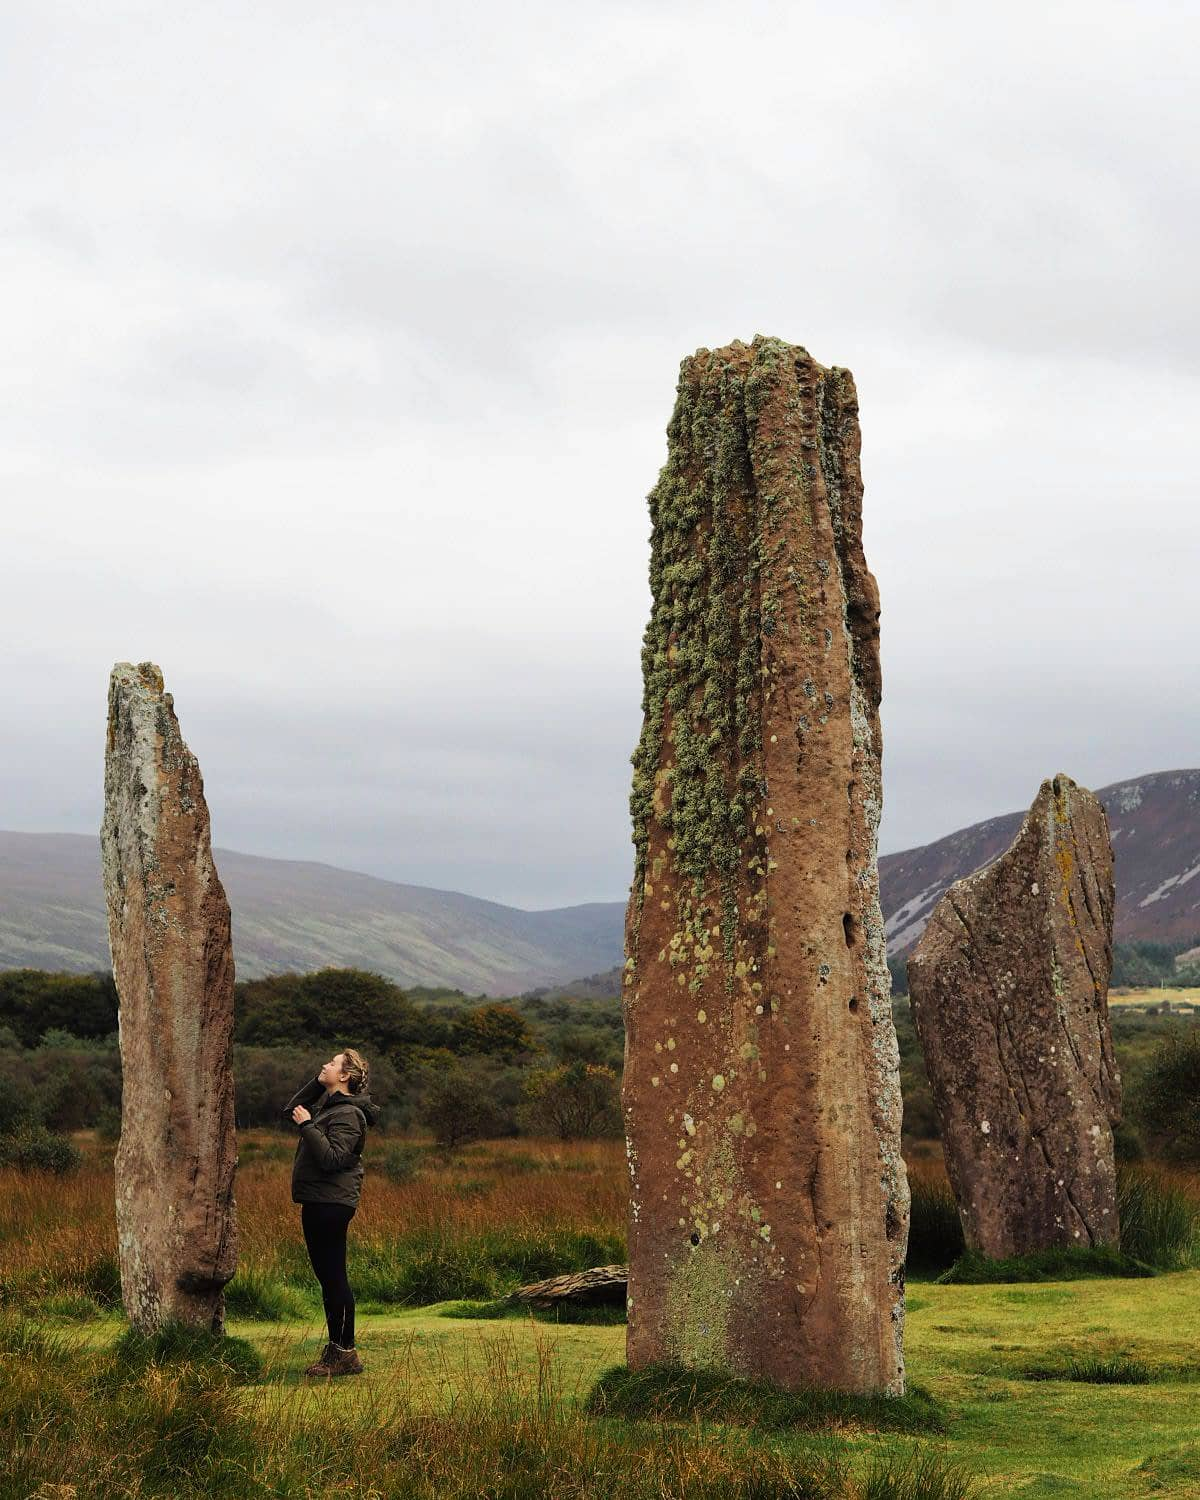 An Outlander moment - looking up at the huge Machrie Moor standing stones